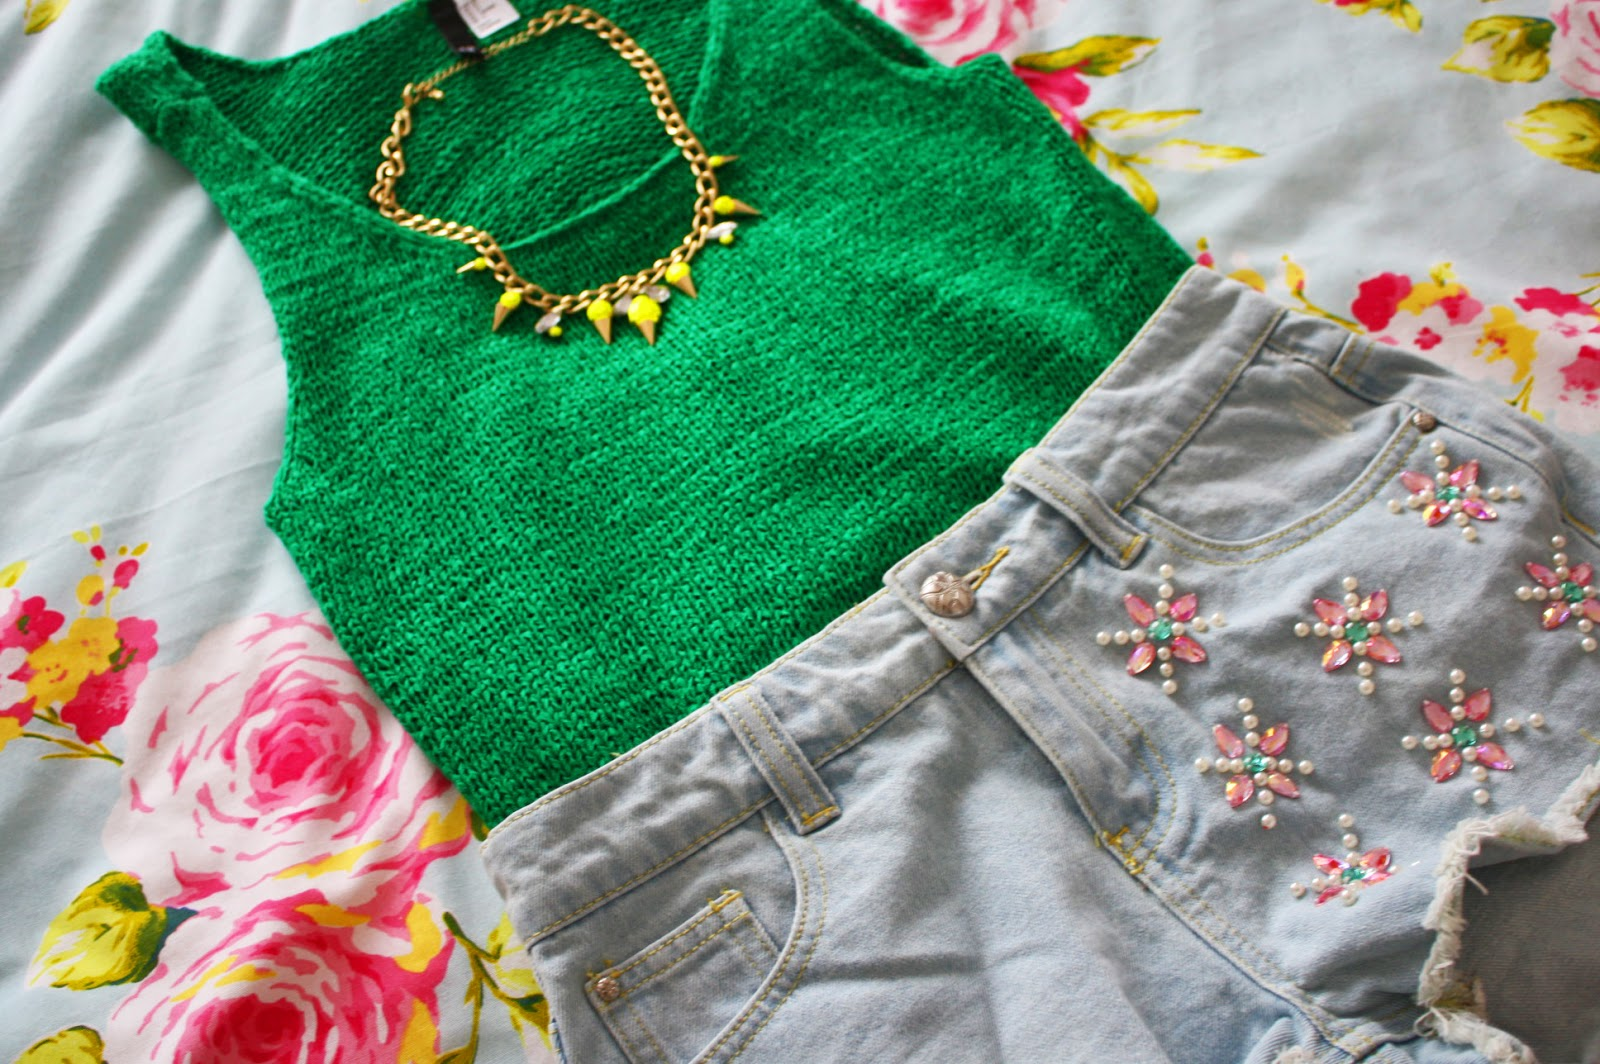 A summer outfit from H&M and Primark